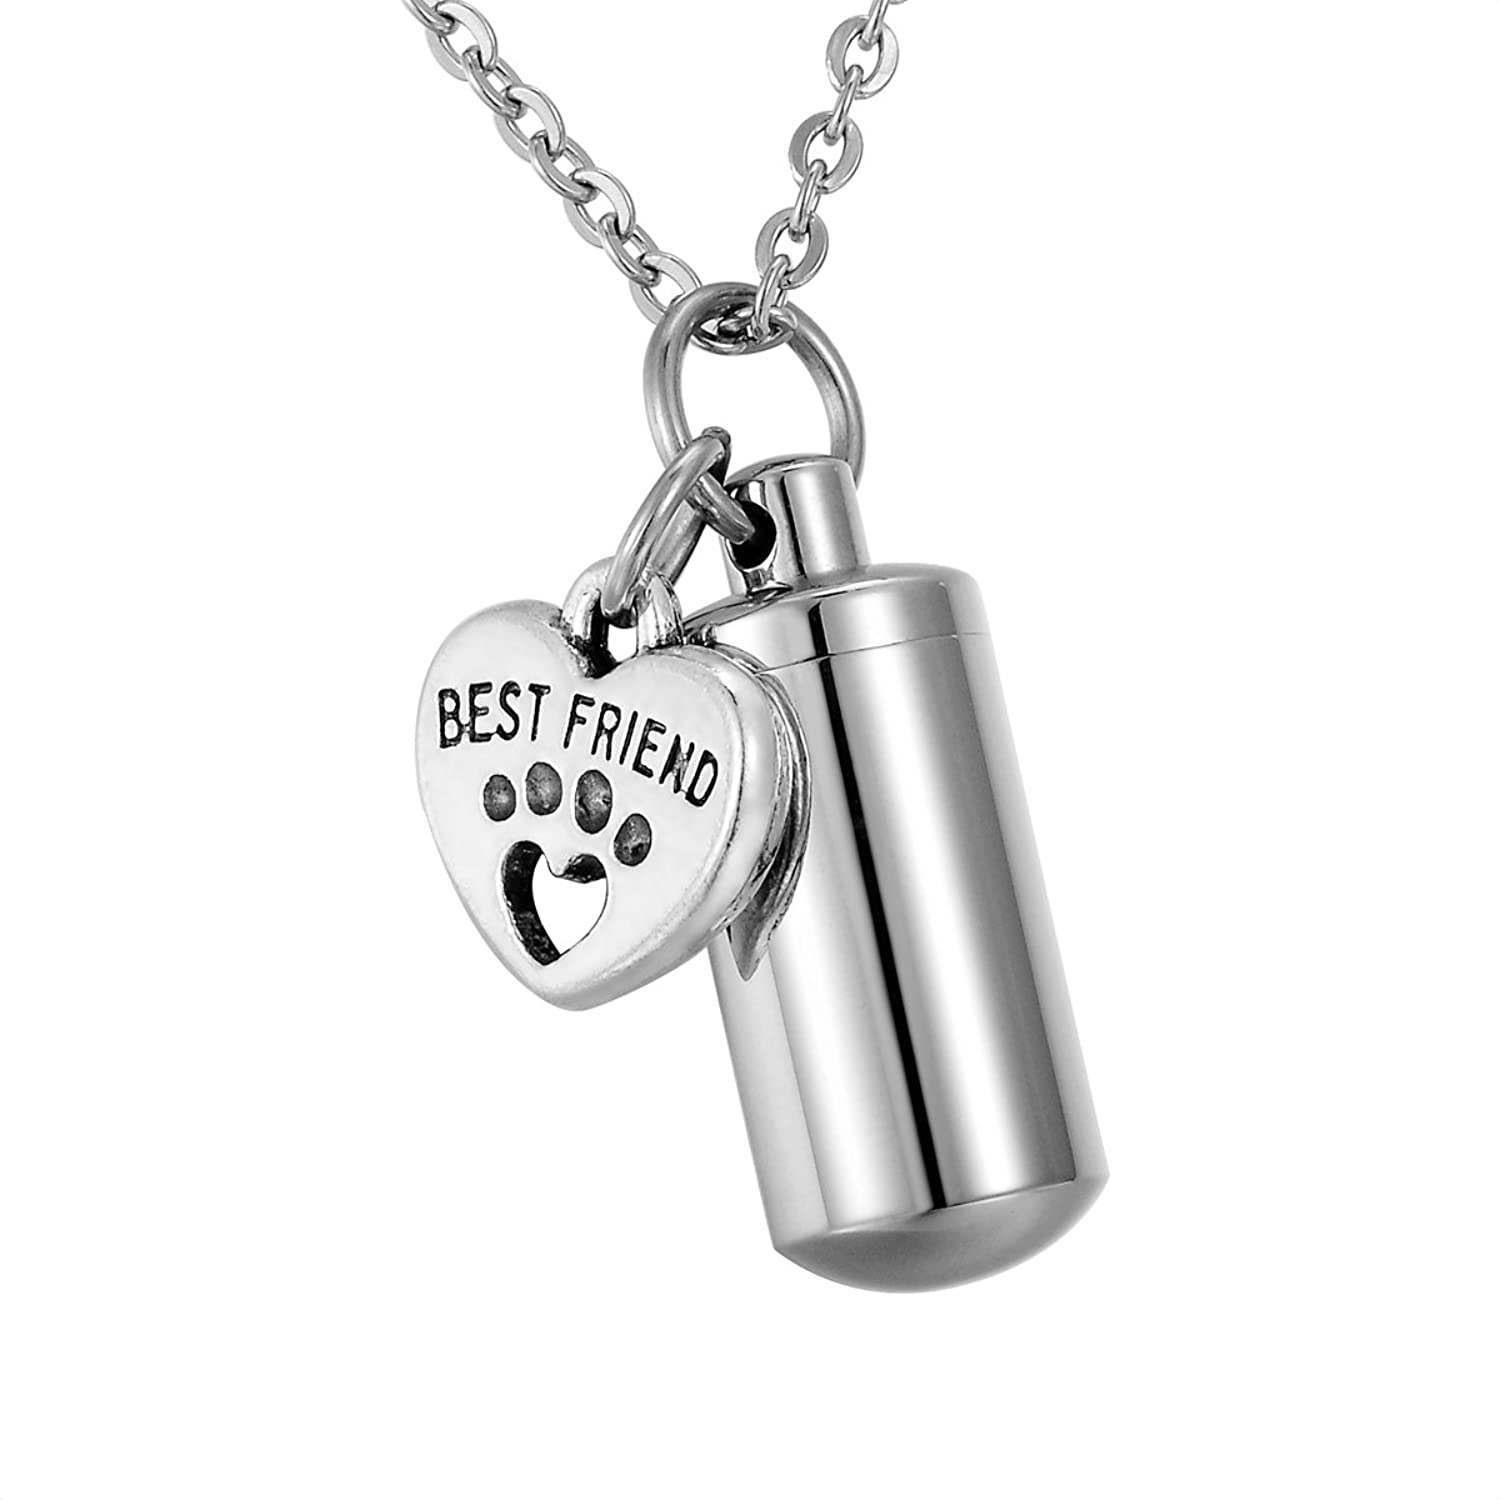 Hooami best friend pet paw heart charm cylinder memorial urn hooami best friend pet paw heart charm cylinder memorial urn necklace stainless steel cremation jewelry amazon mozeypictures Image collections